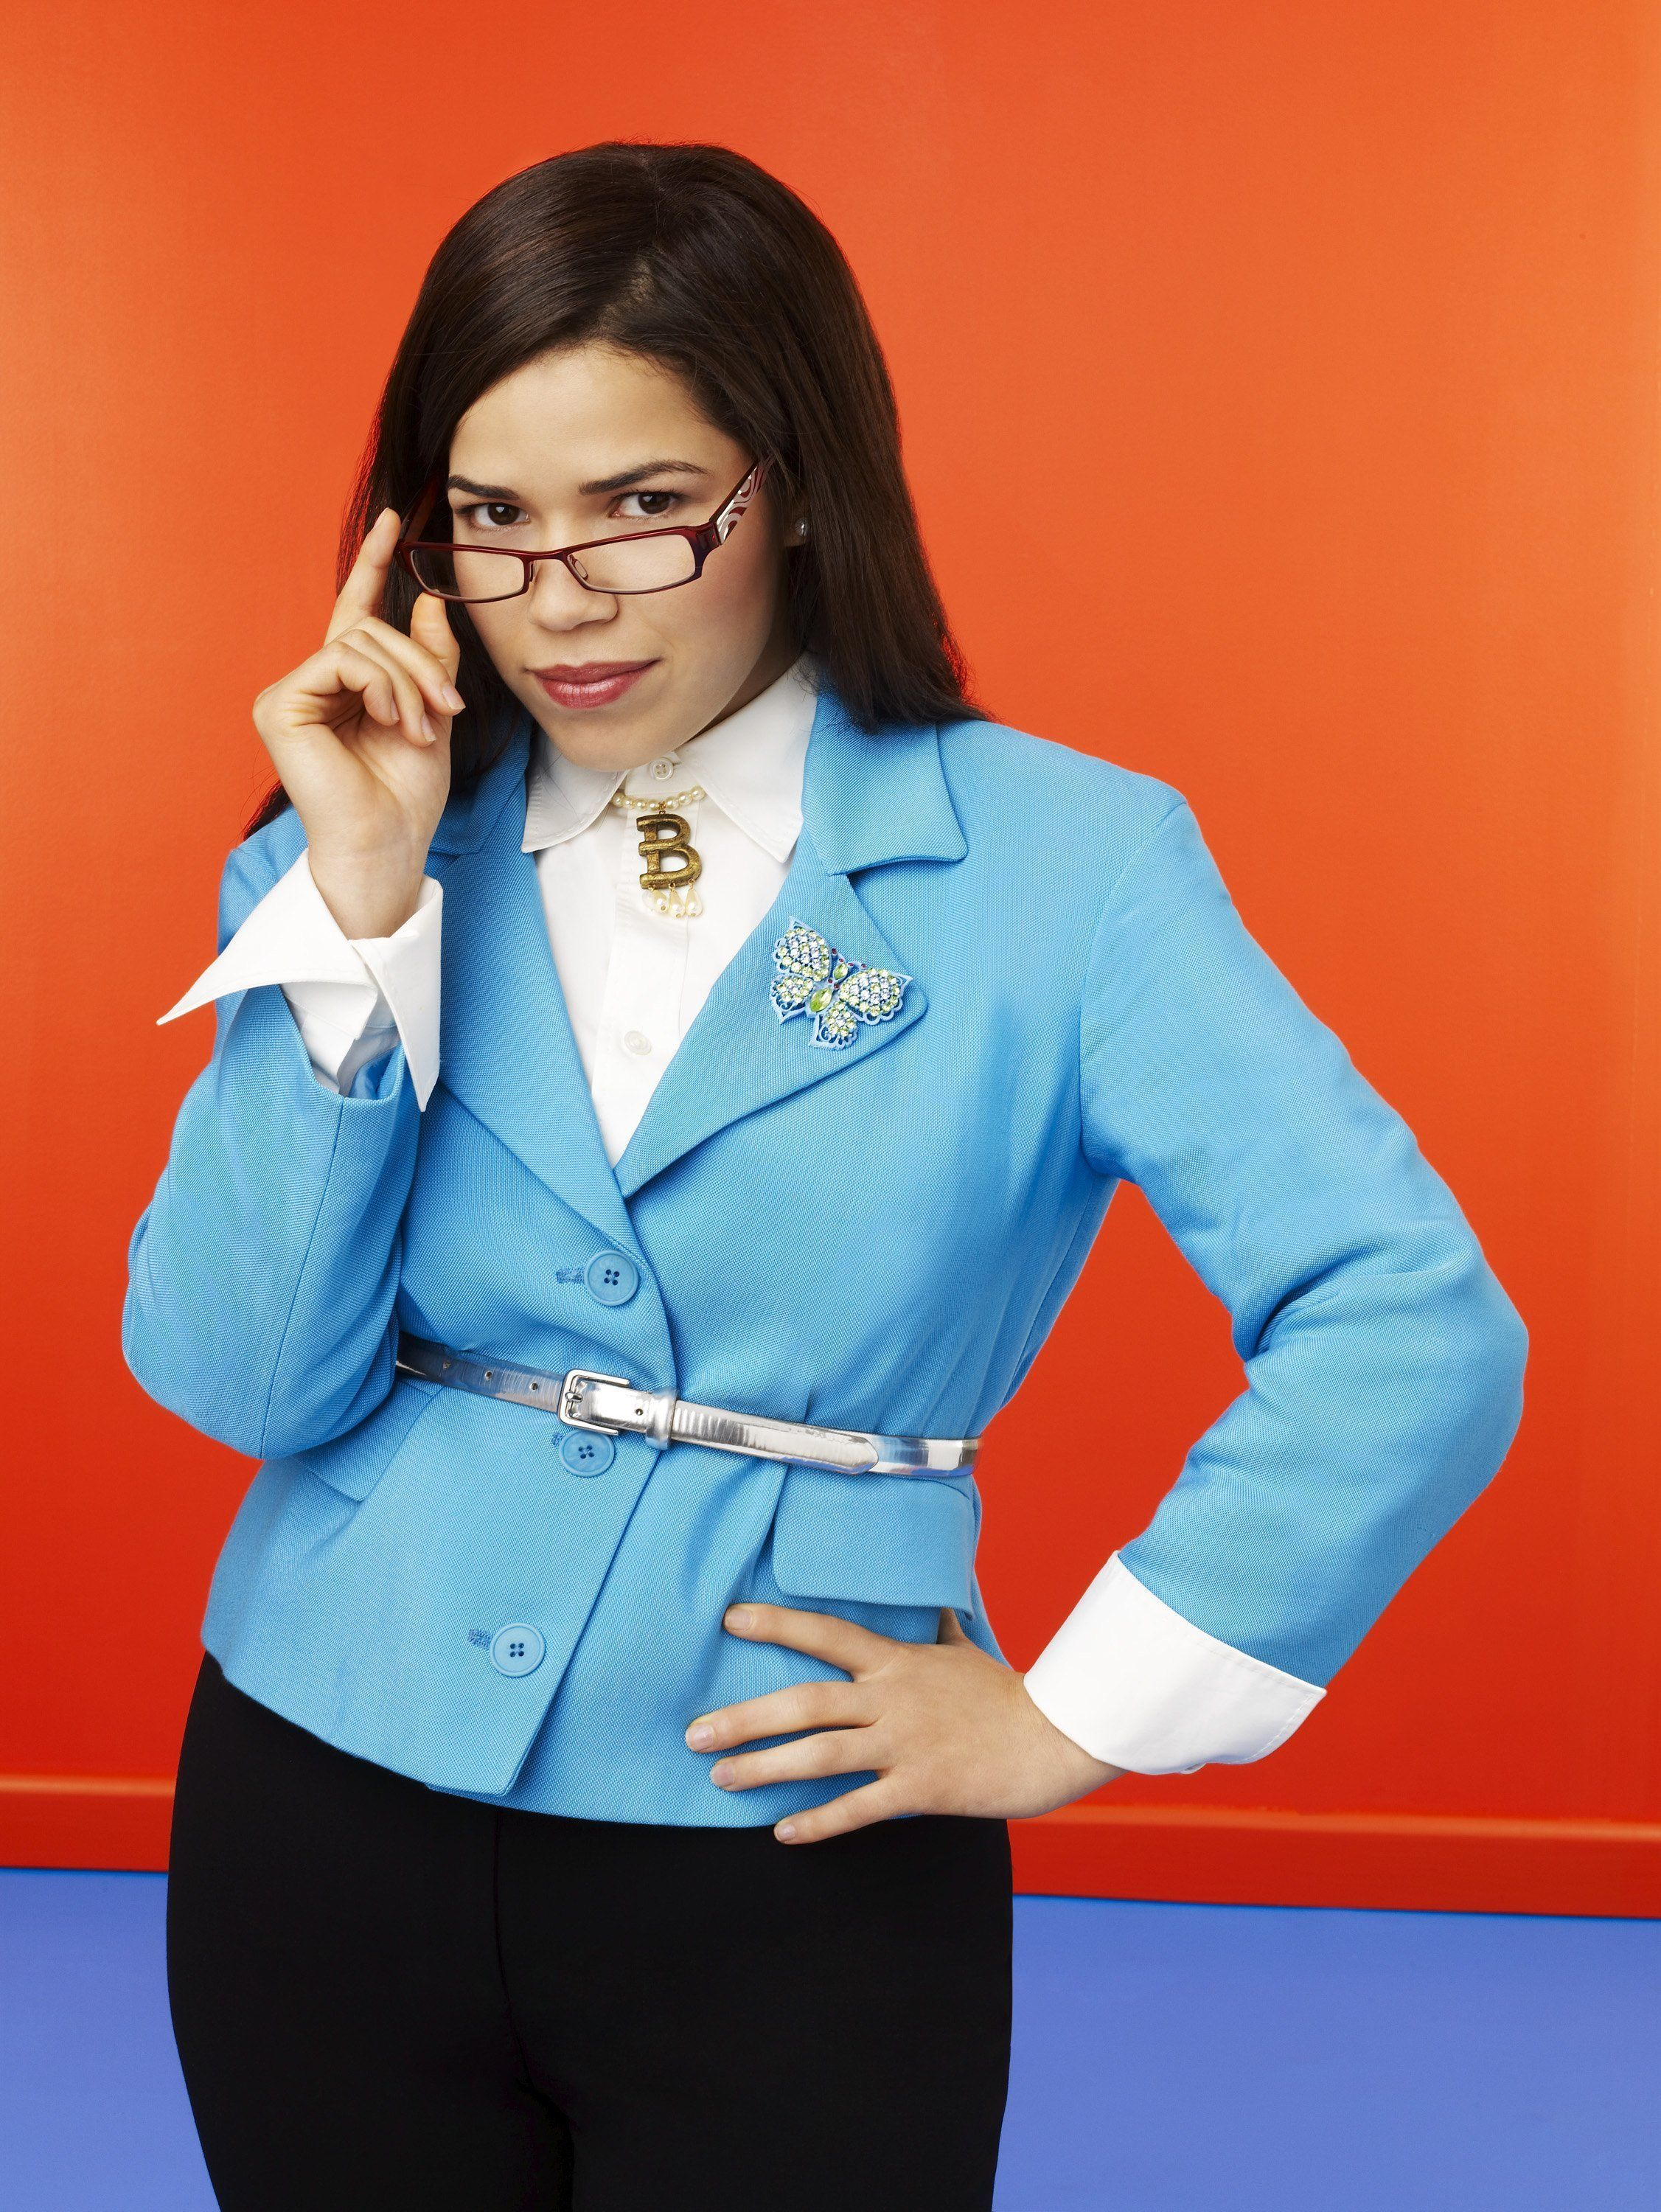 UGLY BETTY - ABC's 'Ugly Betty' stars America Ferrera as Betty Suarez. (Photo by Andrew Eccles/ABC via Getty Images)